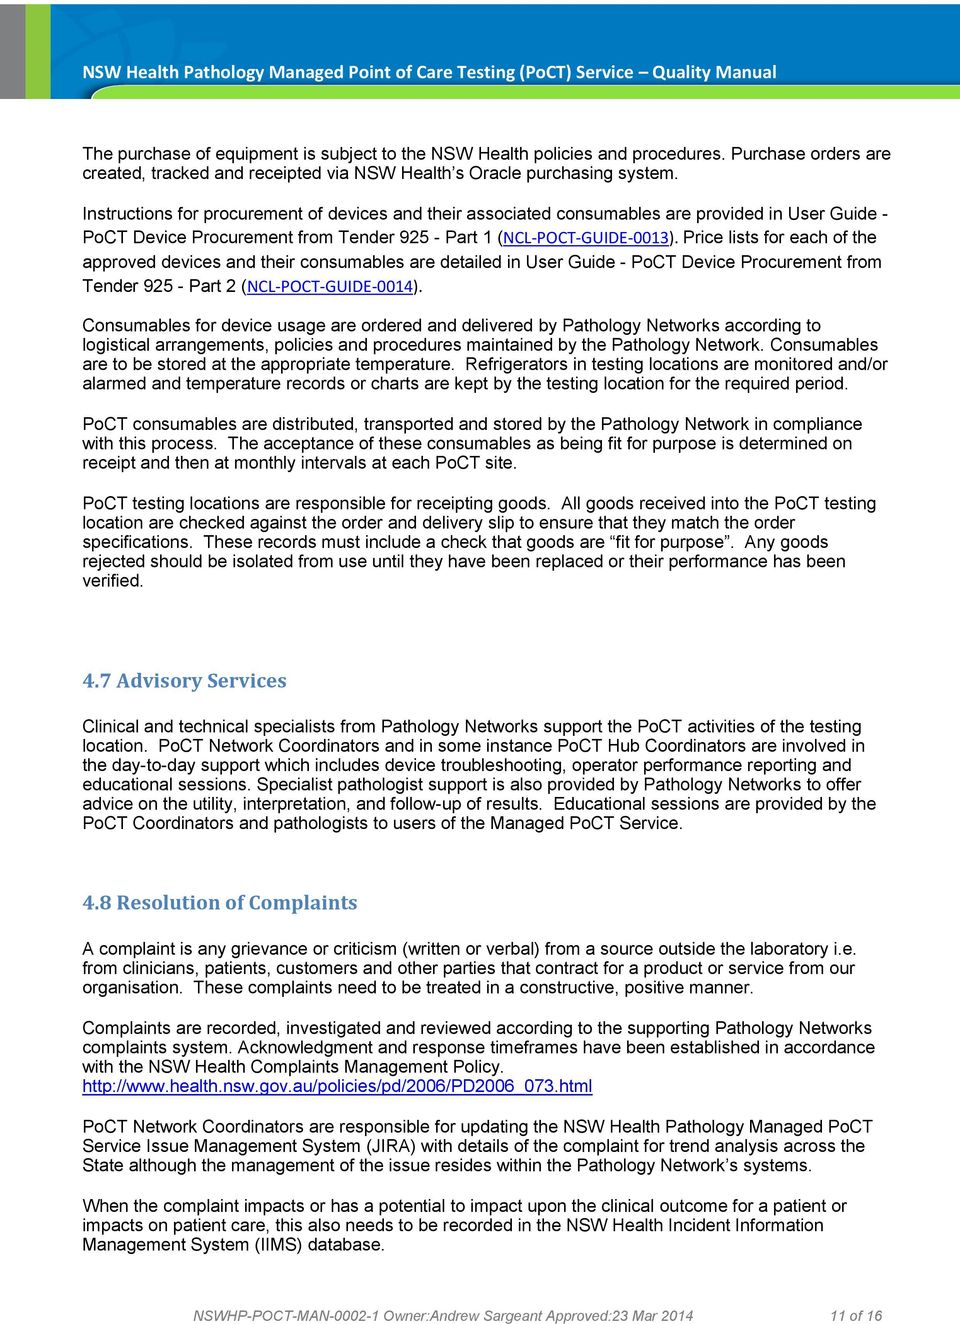 NSW Health Pathology Managed Point of Care Testing (PoCT) Service